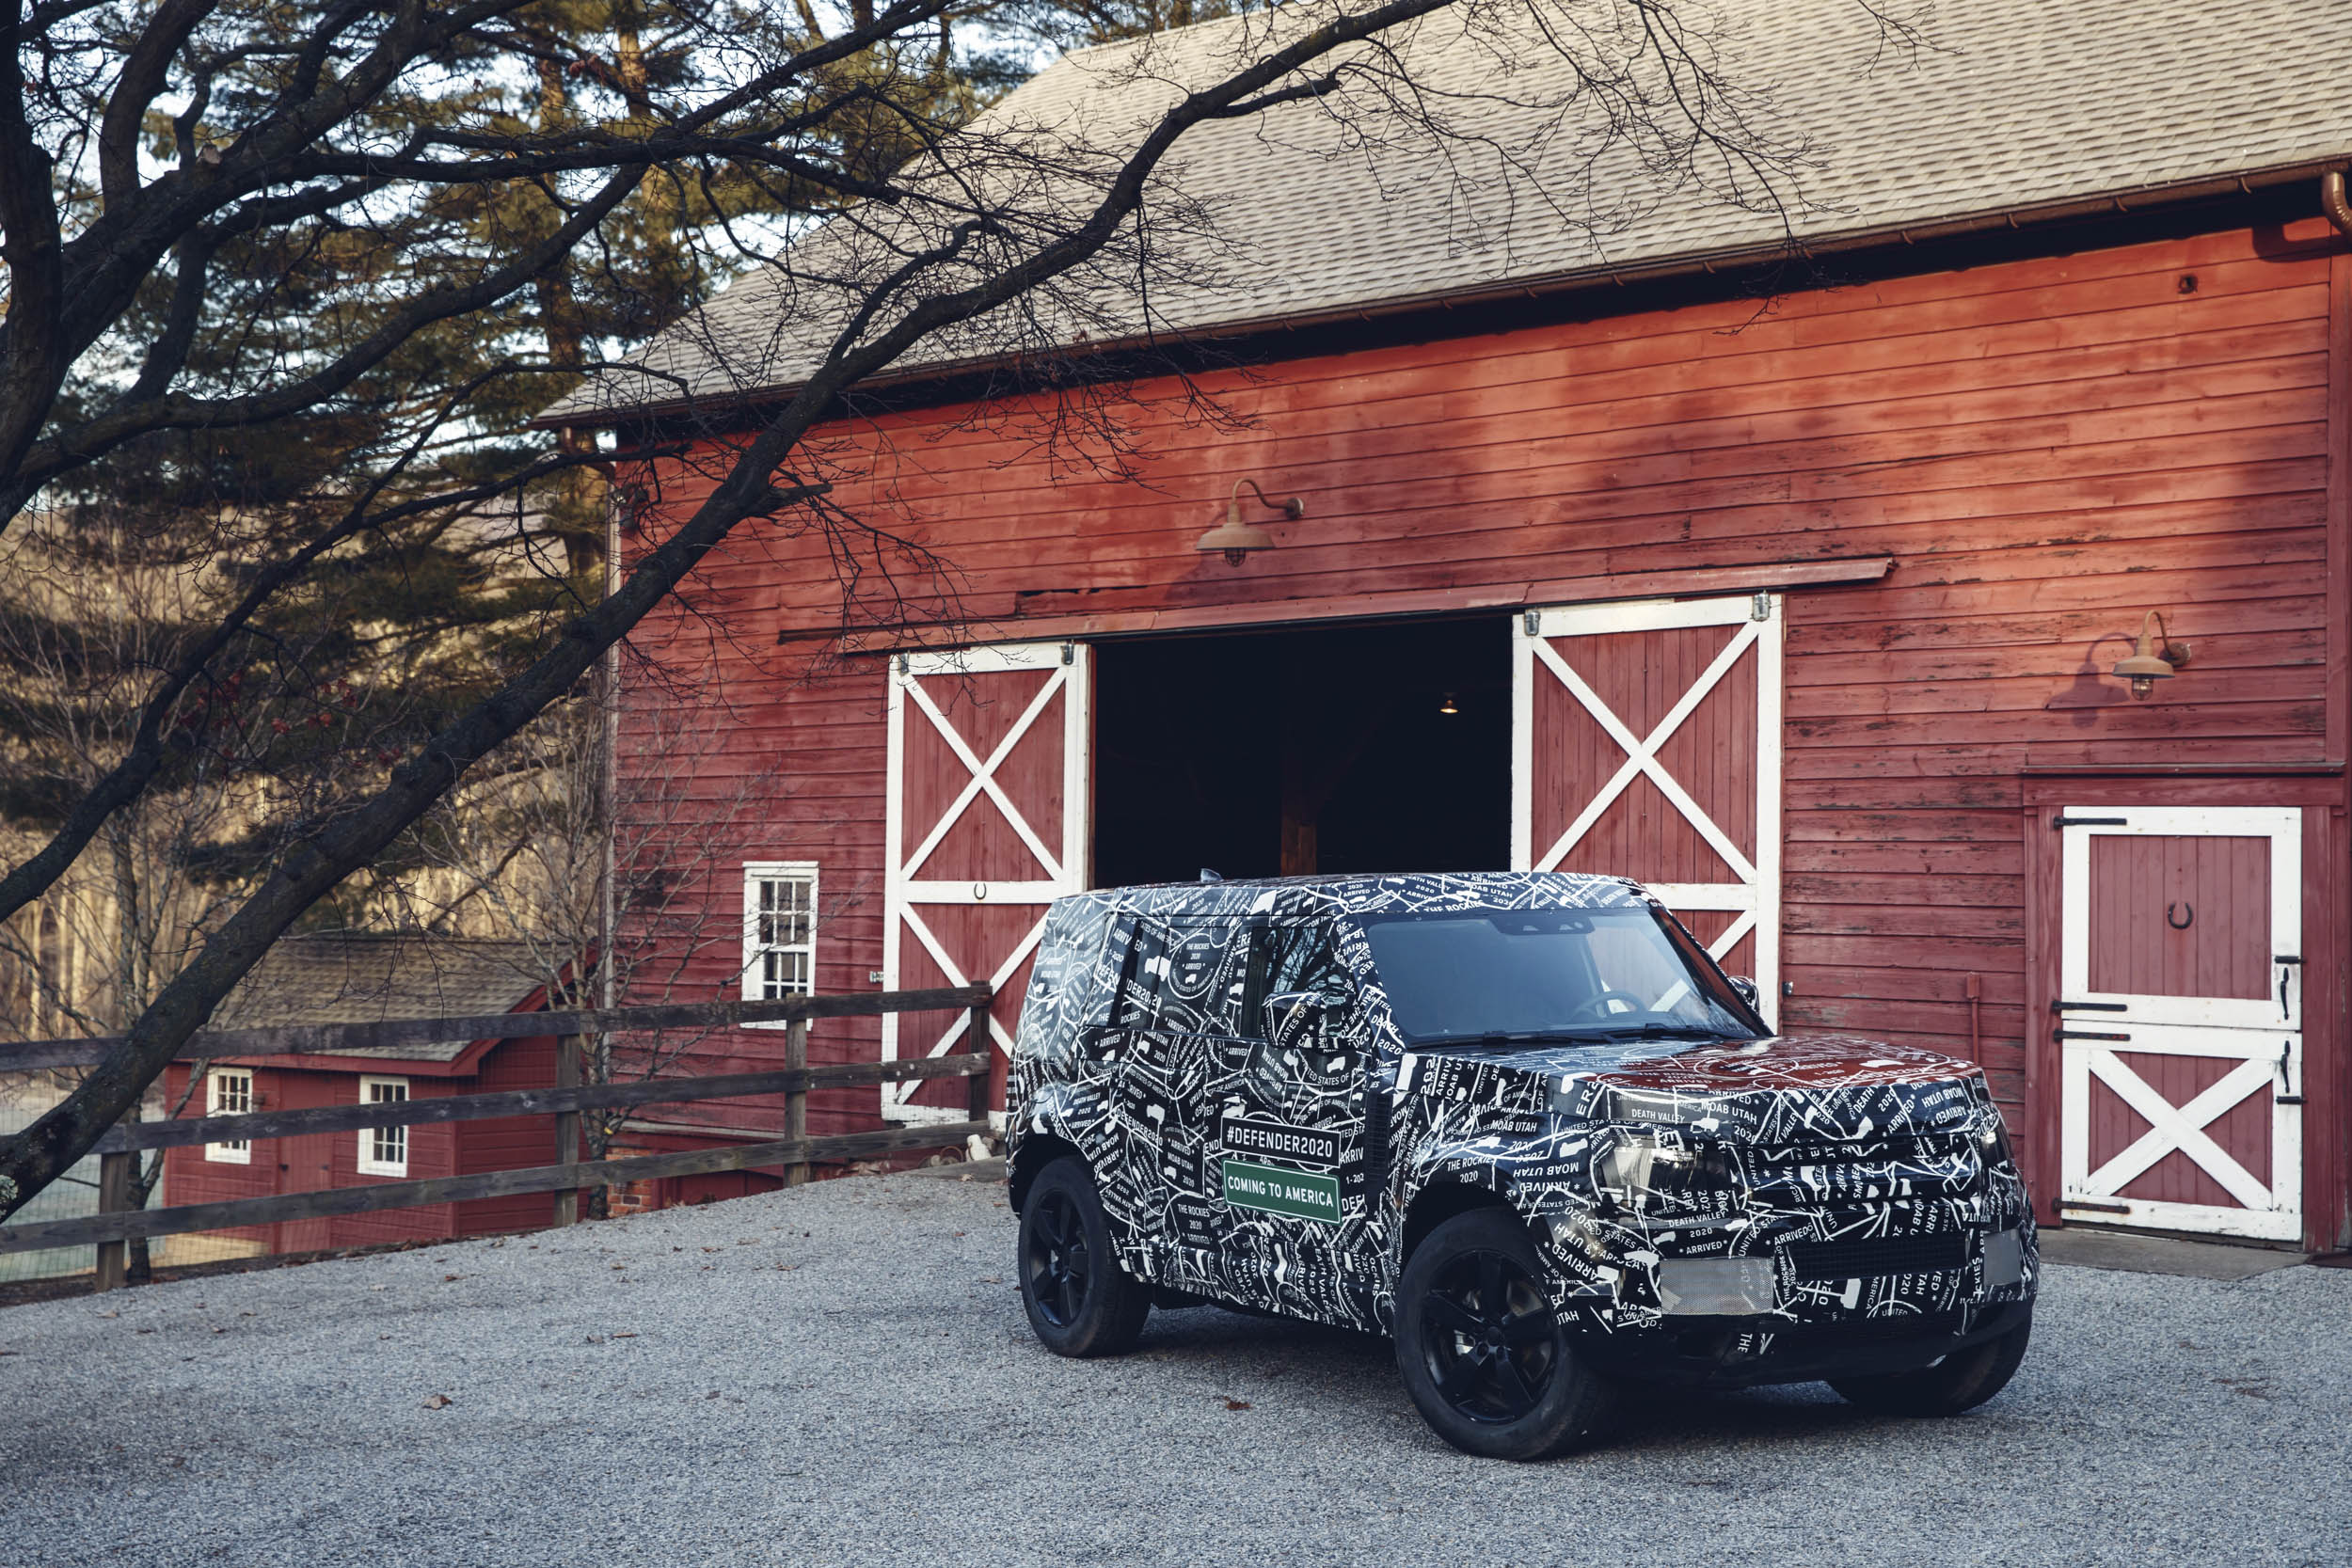 Land Rover Defender in front of a barn